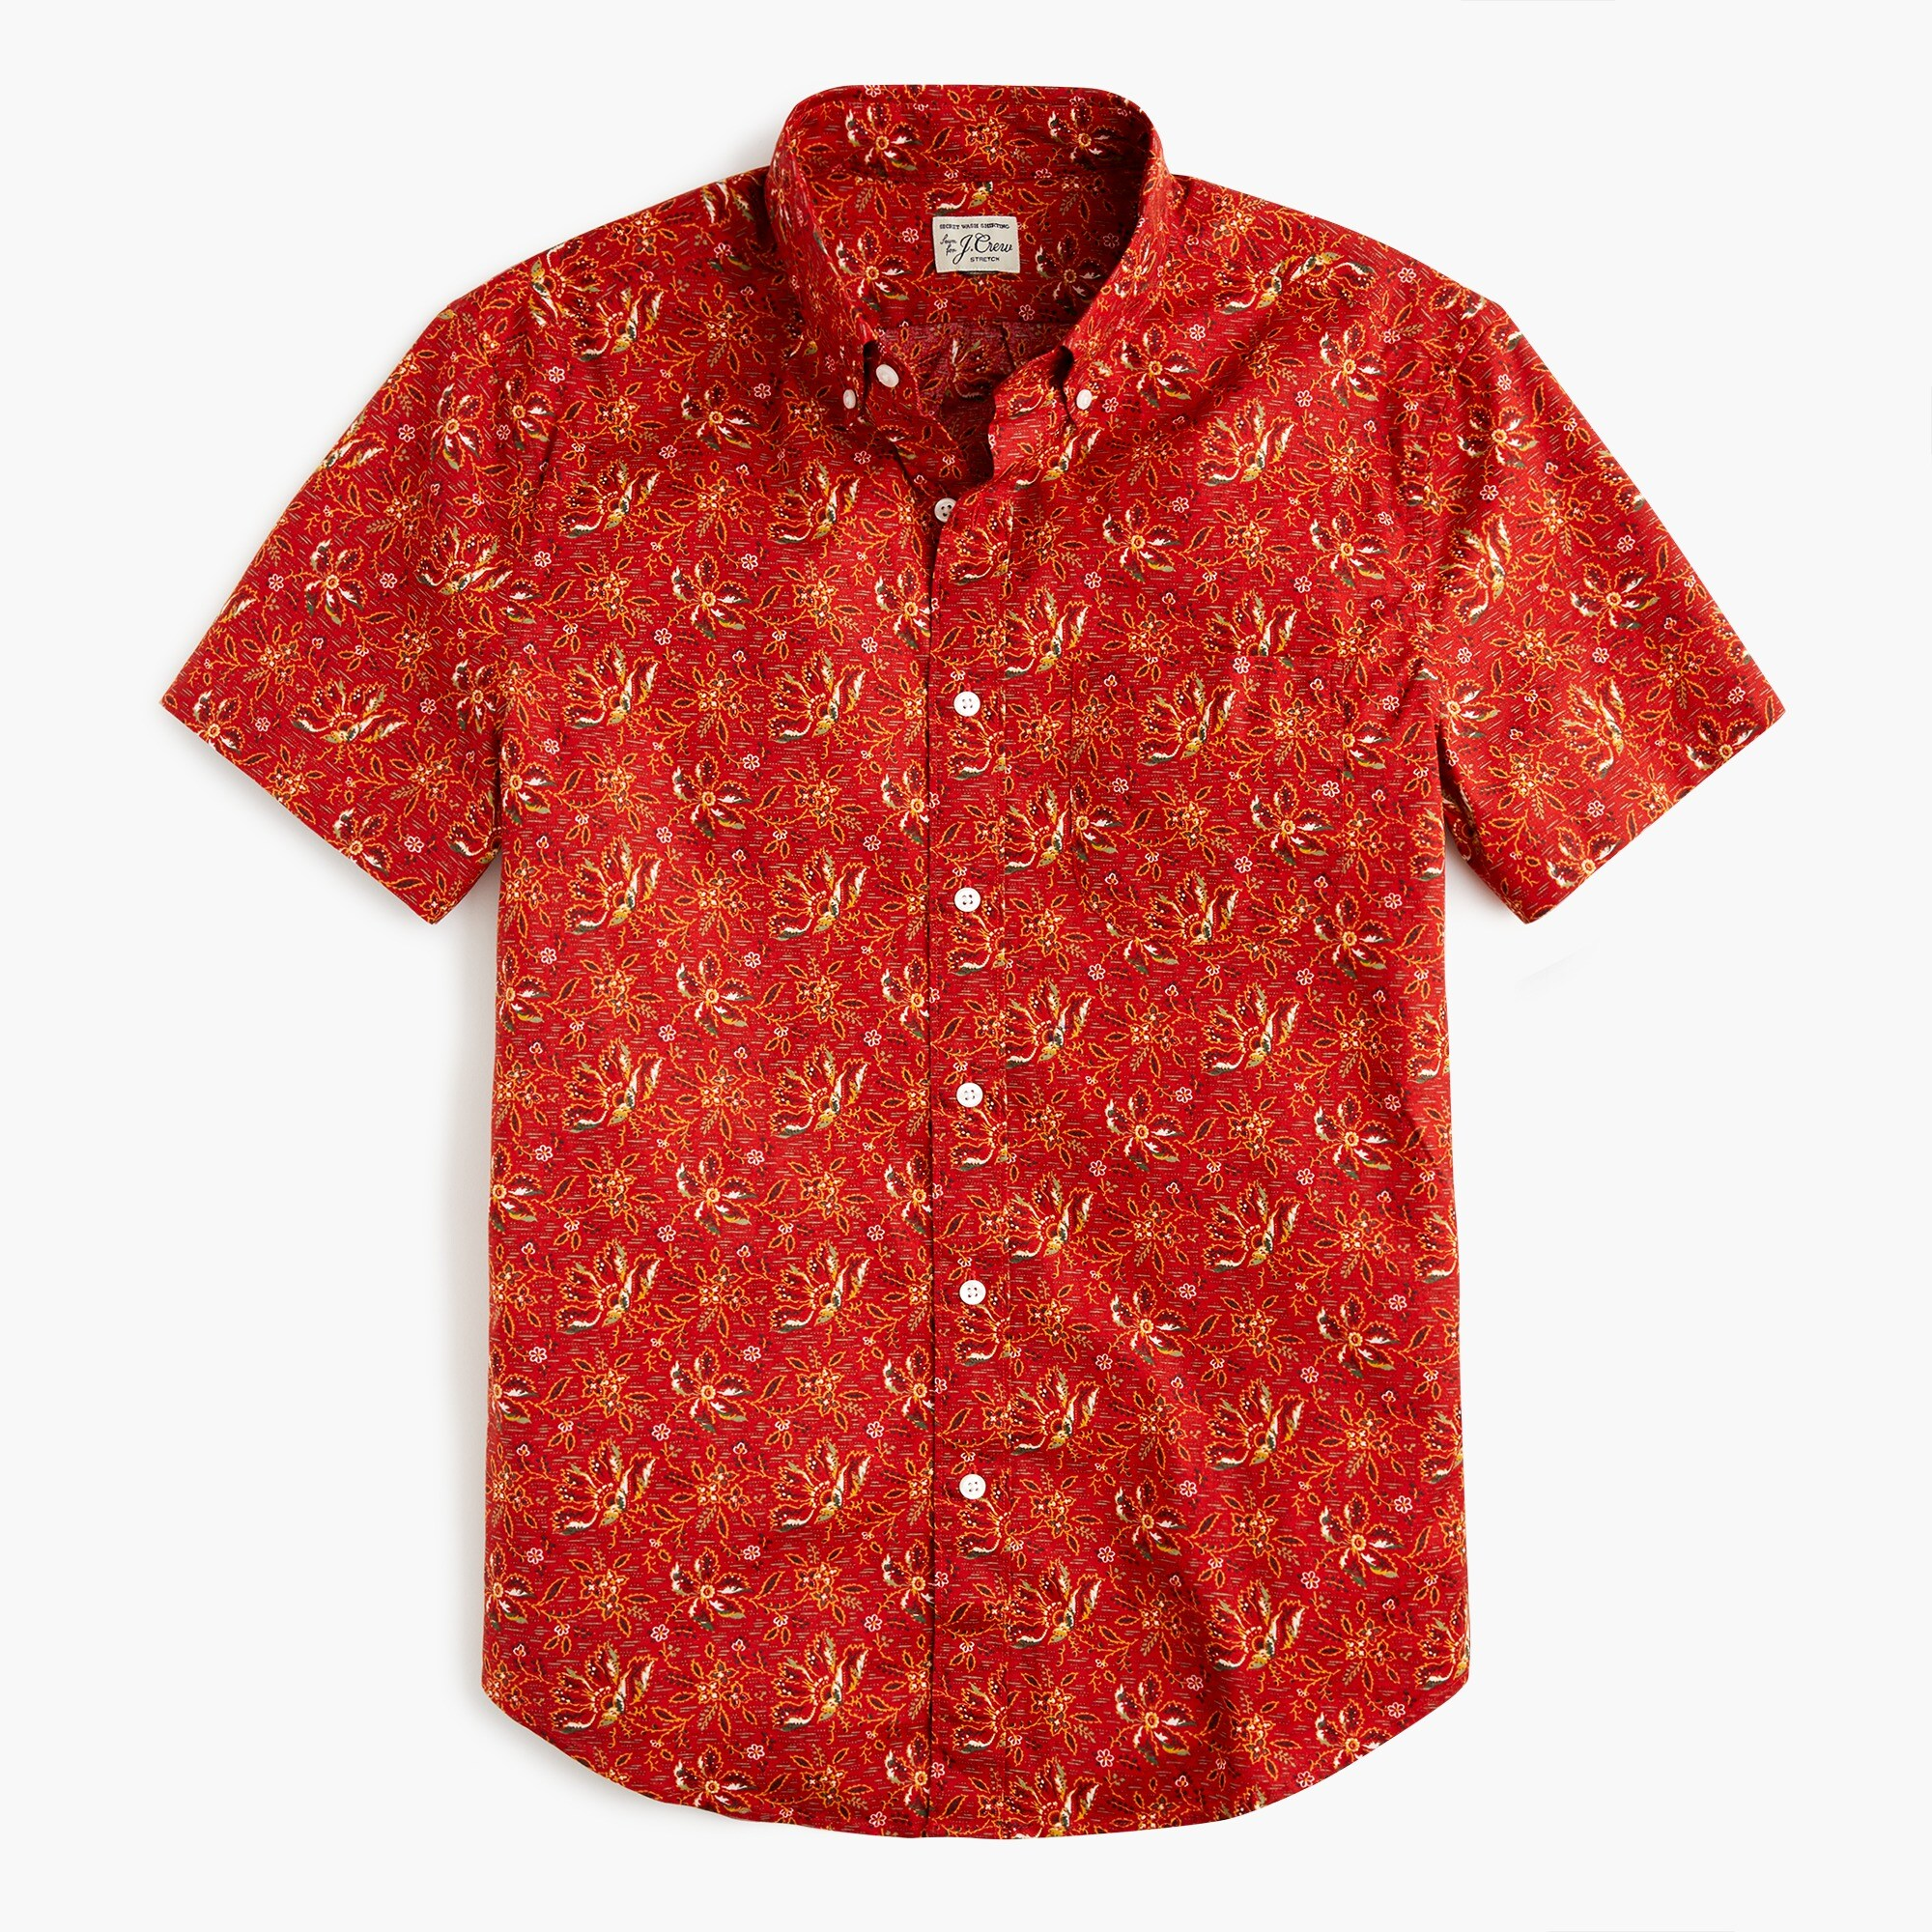 mens Short-sleeve Secret Wash shirt in desert floral print